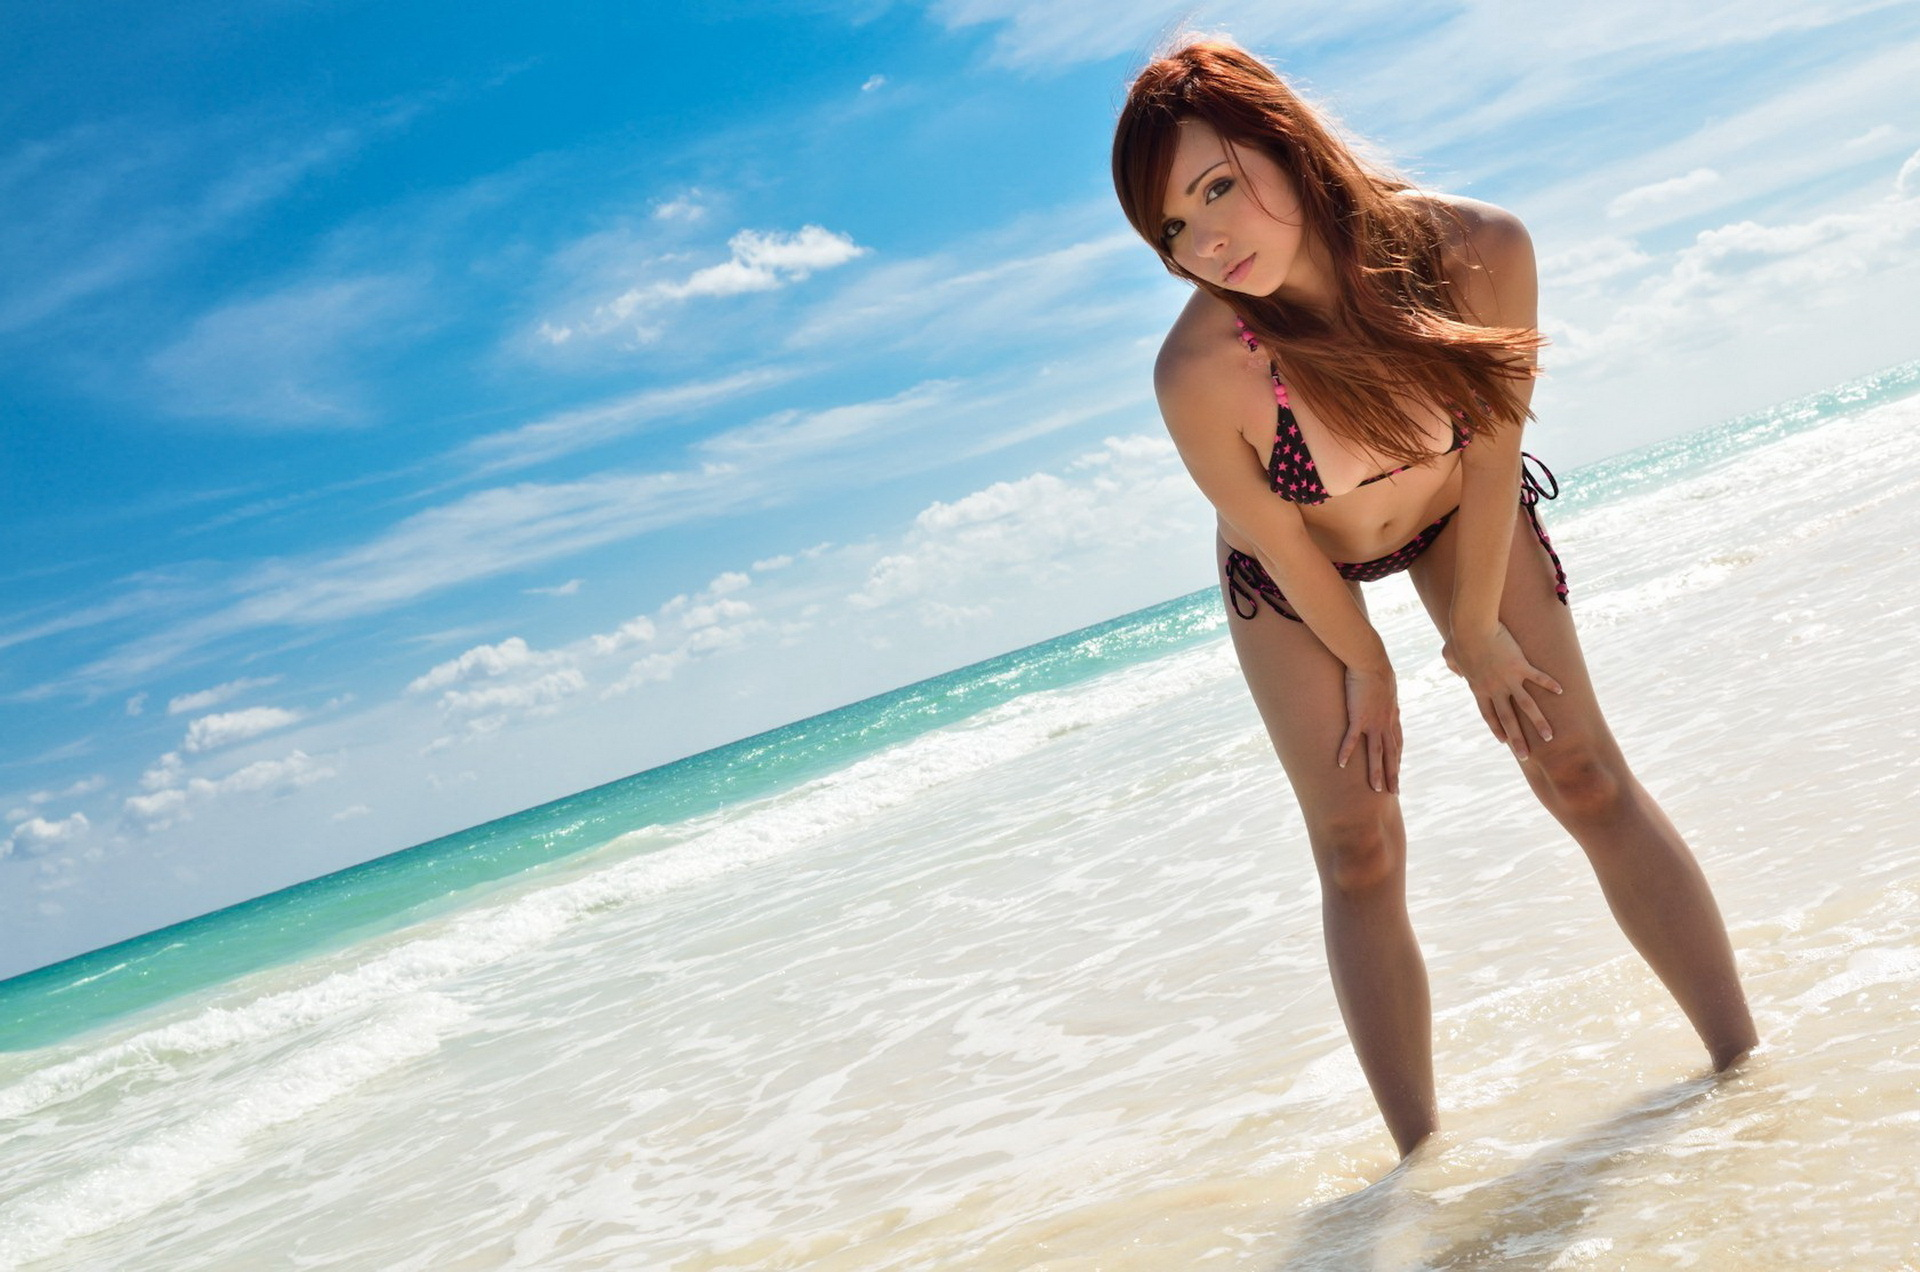 18 year old girl poses totally nude on a deserted sandy beach  176526